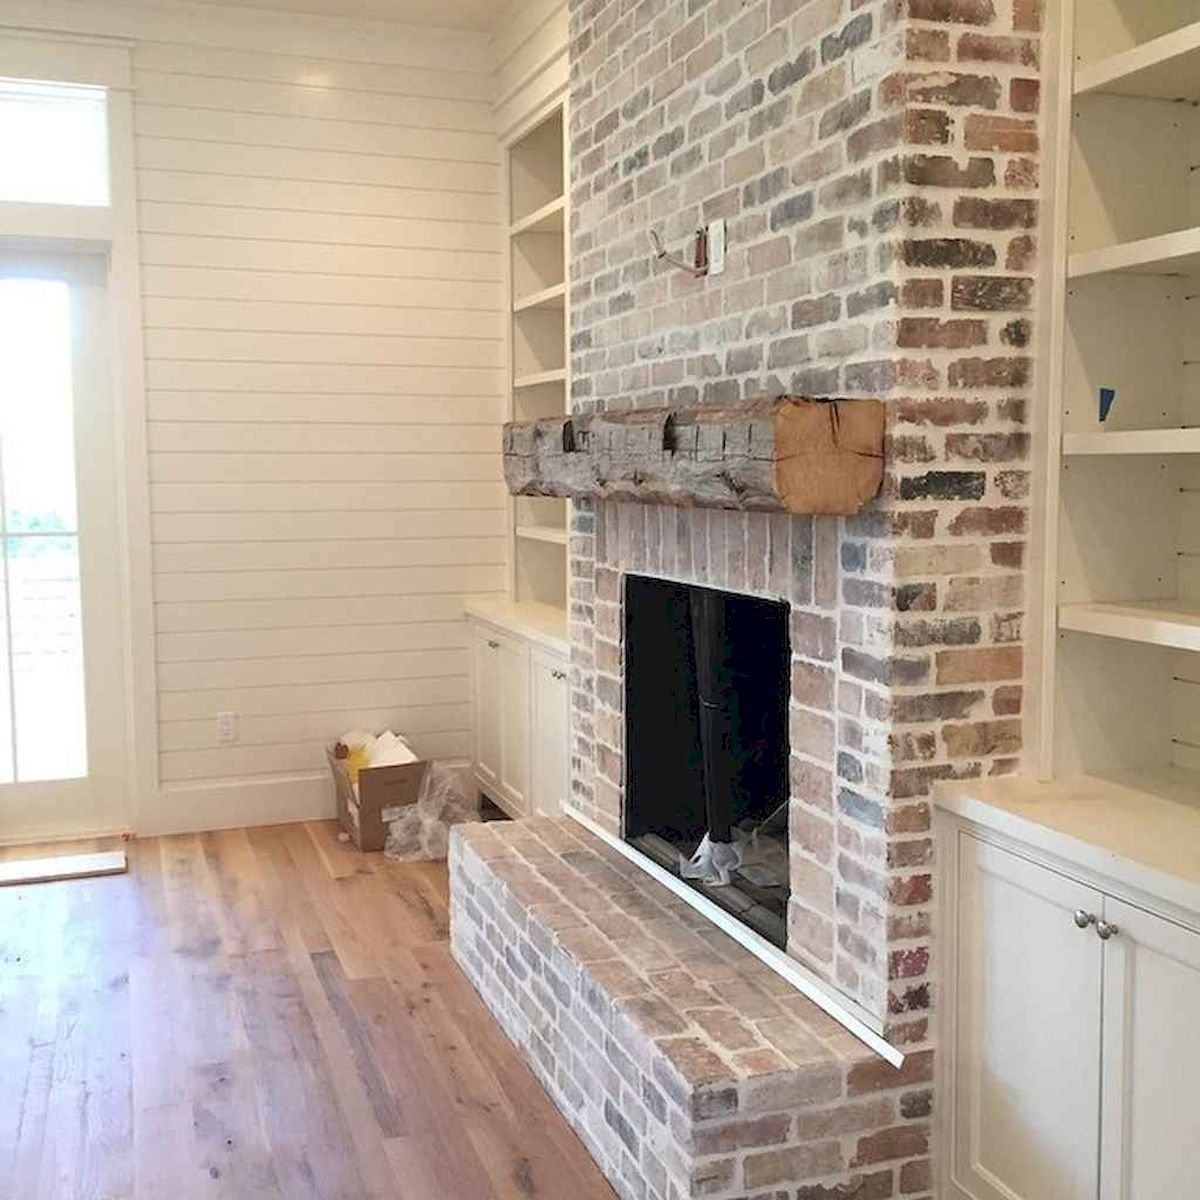 The Best Fireplace Ideas for Farmhouse (17)